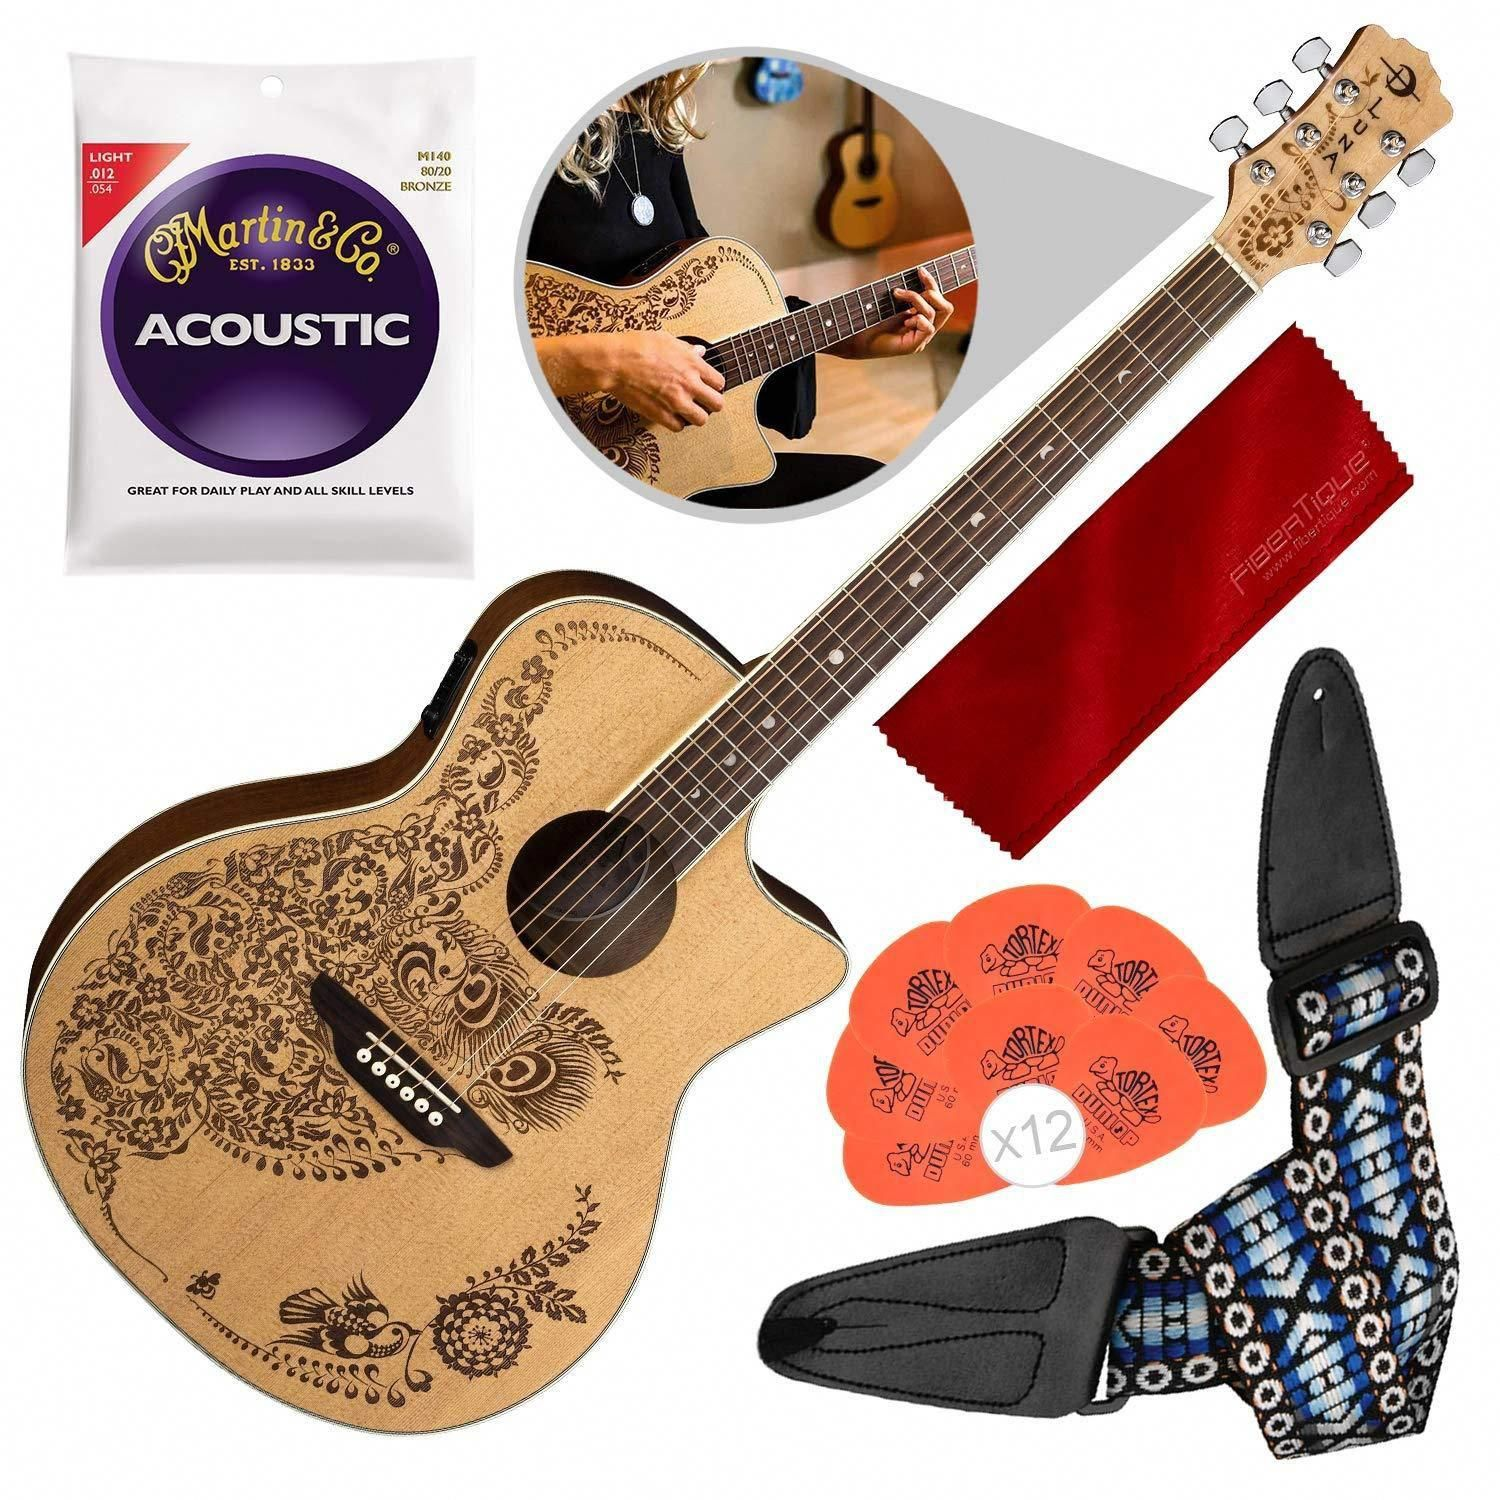 13 Top Guitar Strap For Kids Acoustic Electric Guitar Acoustic Electric Guitar Strap